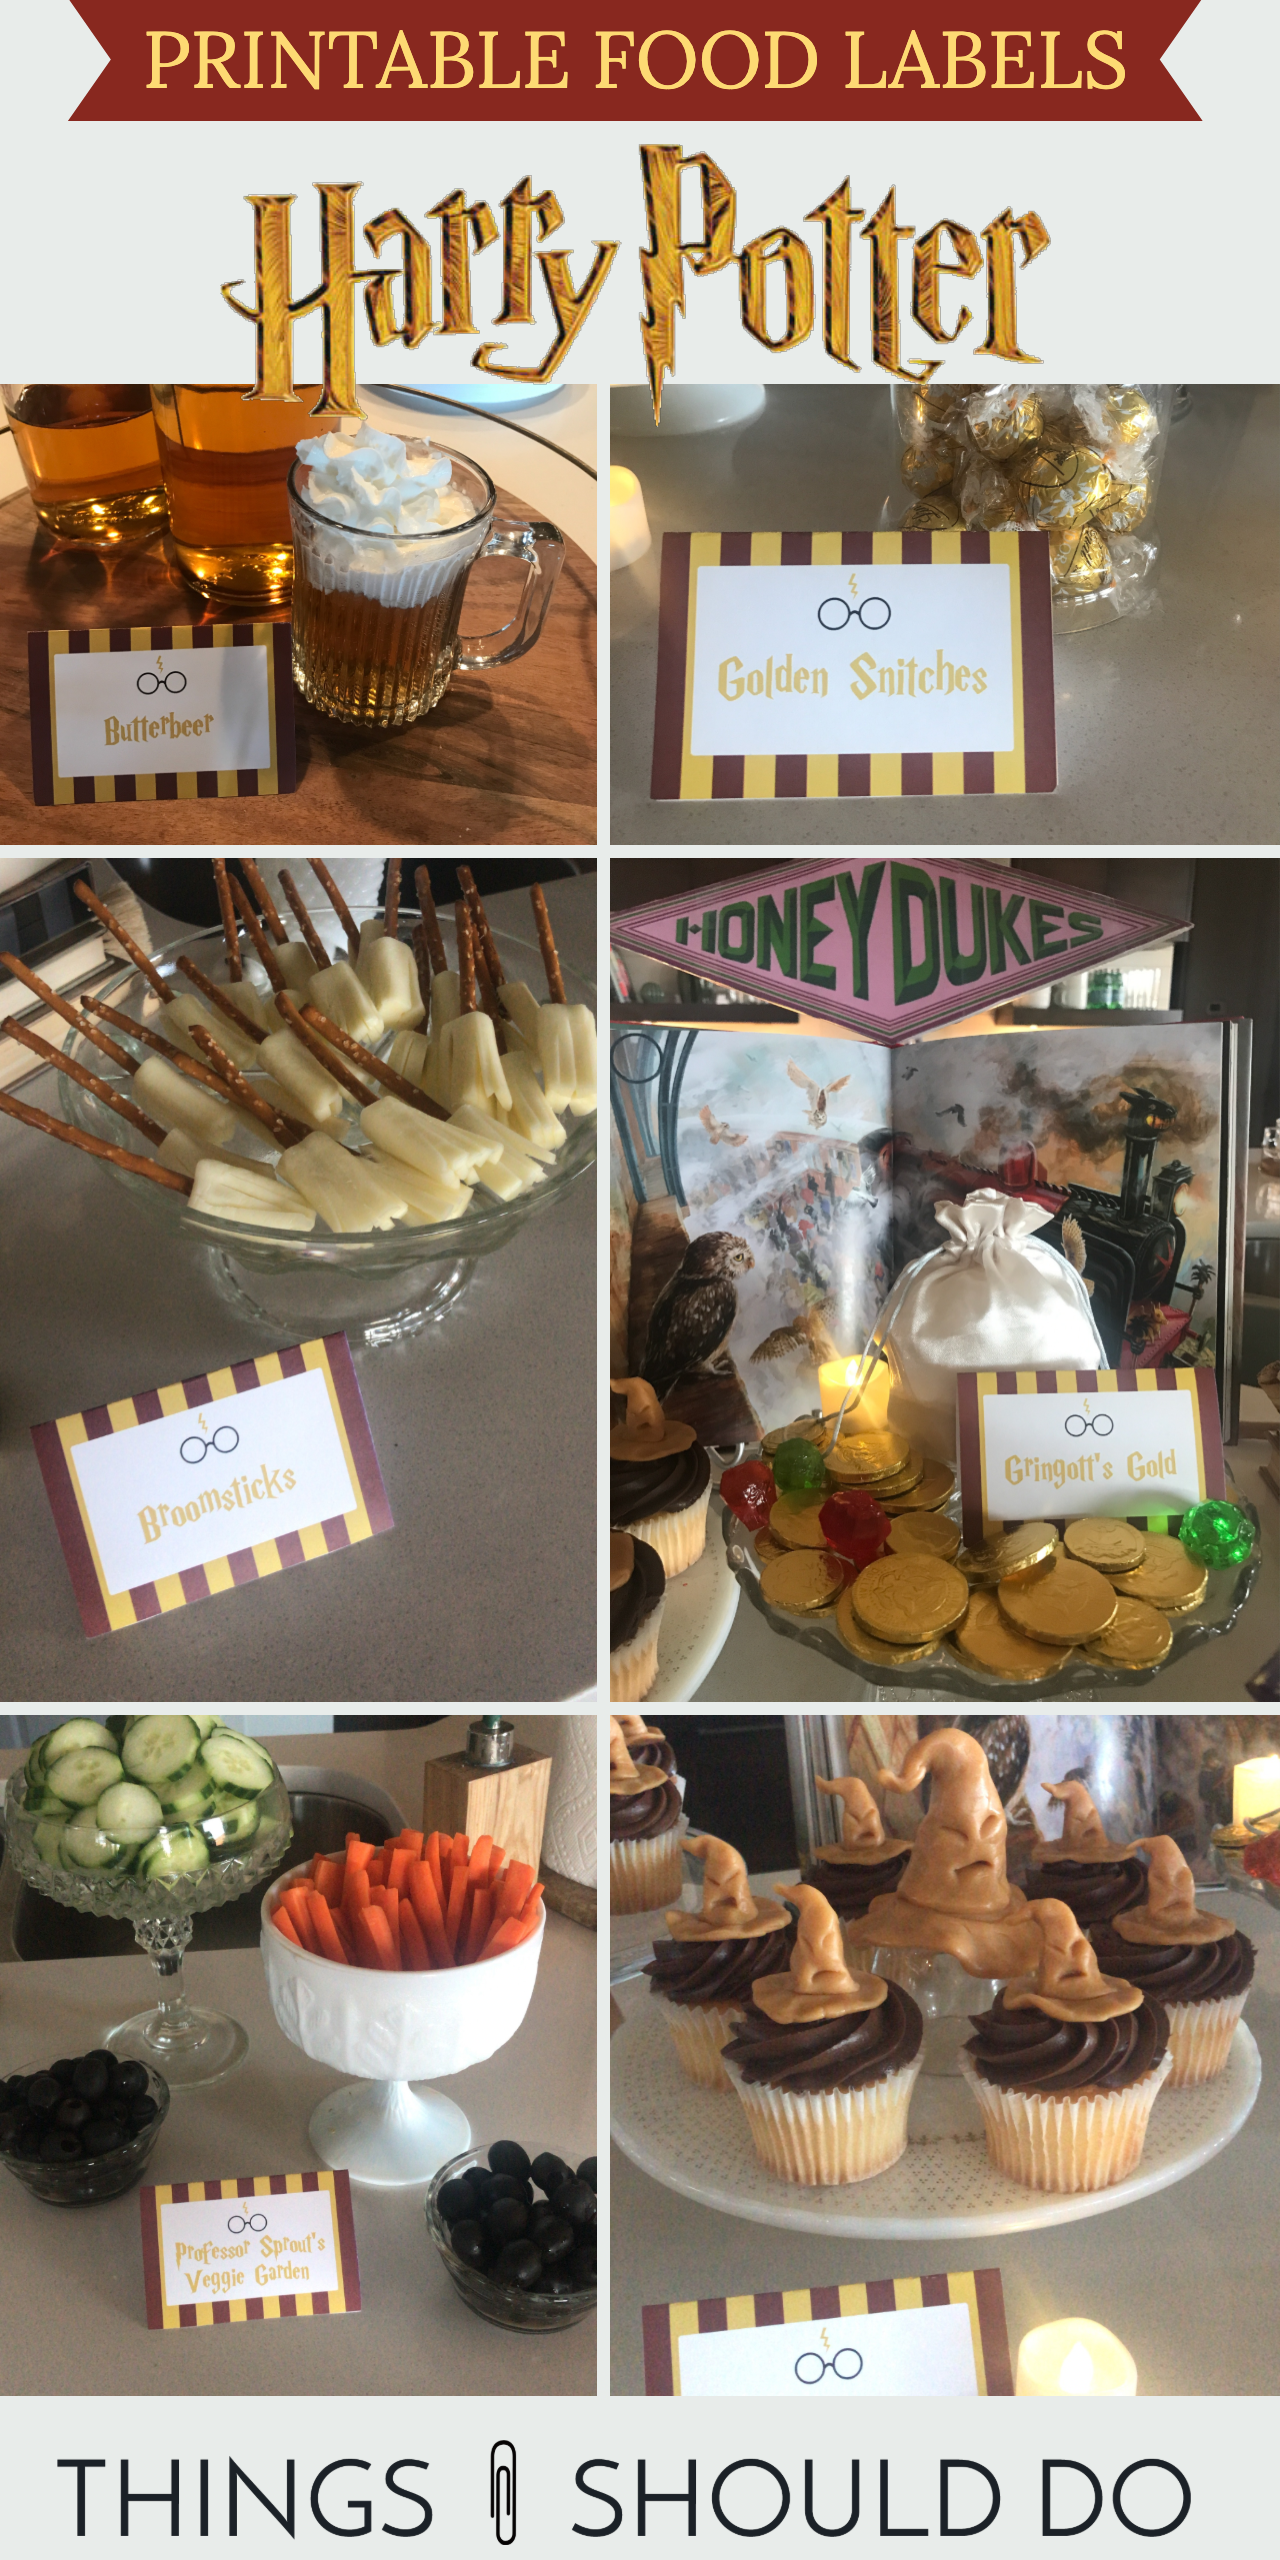 Harry Potter printable food labels! You'll love these Hogwarts-worthy food labels for your next Harry Potter party. Simple print them, fold and enjoy!